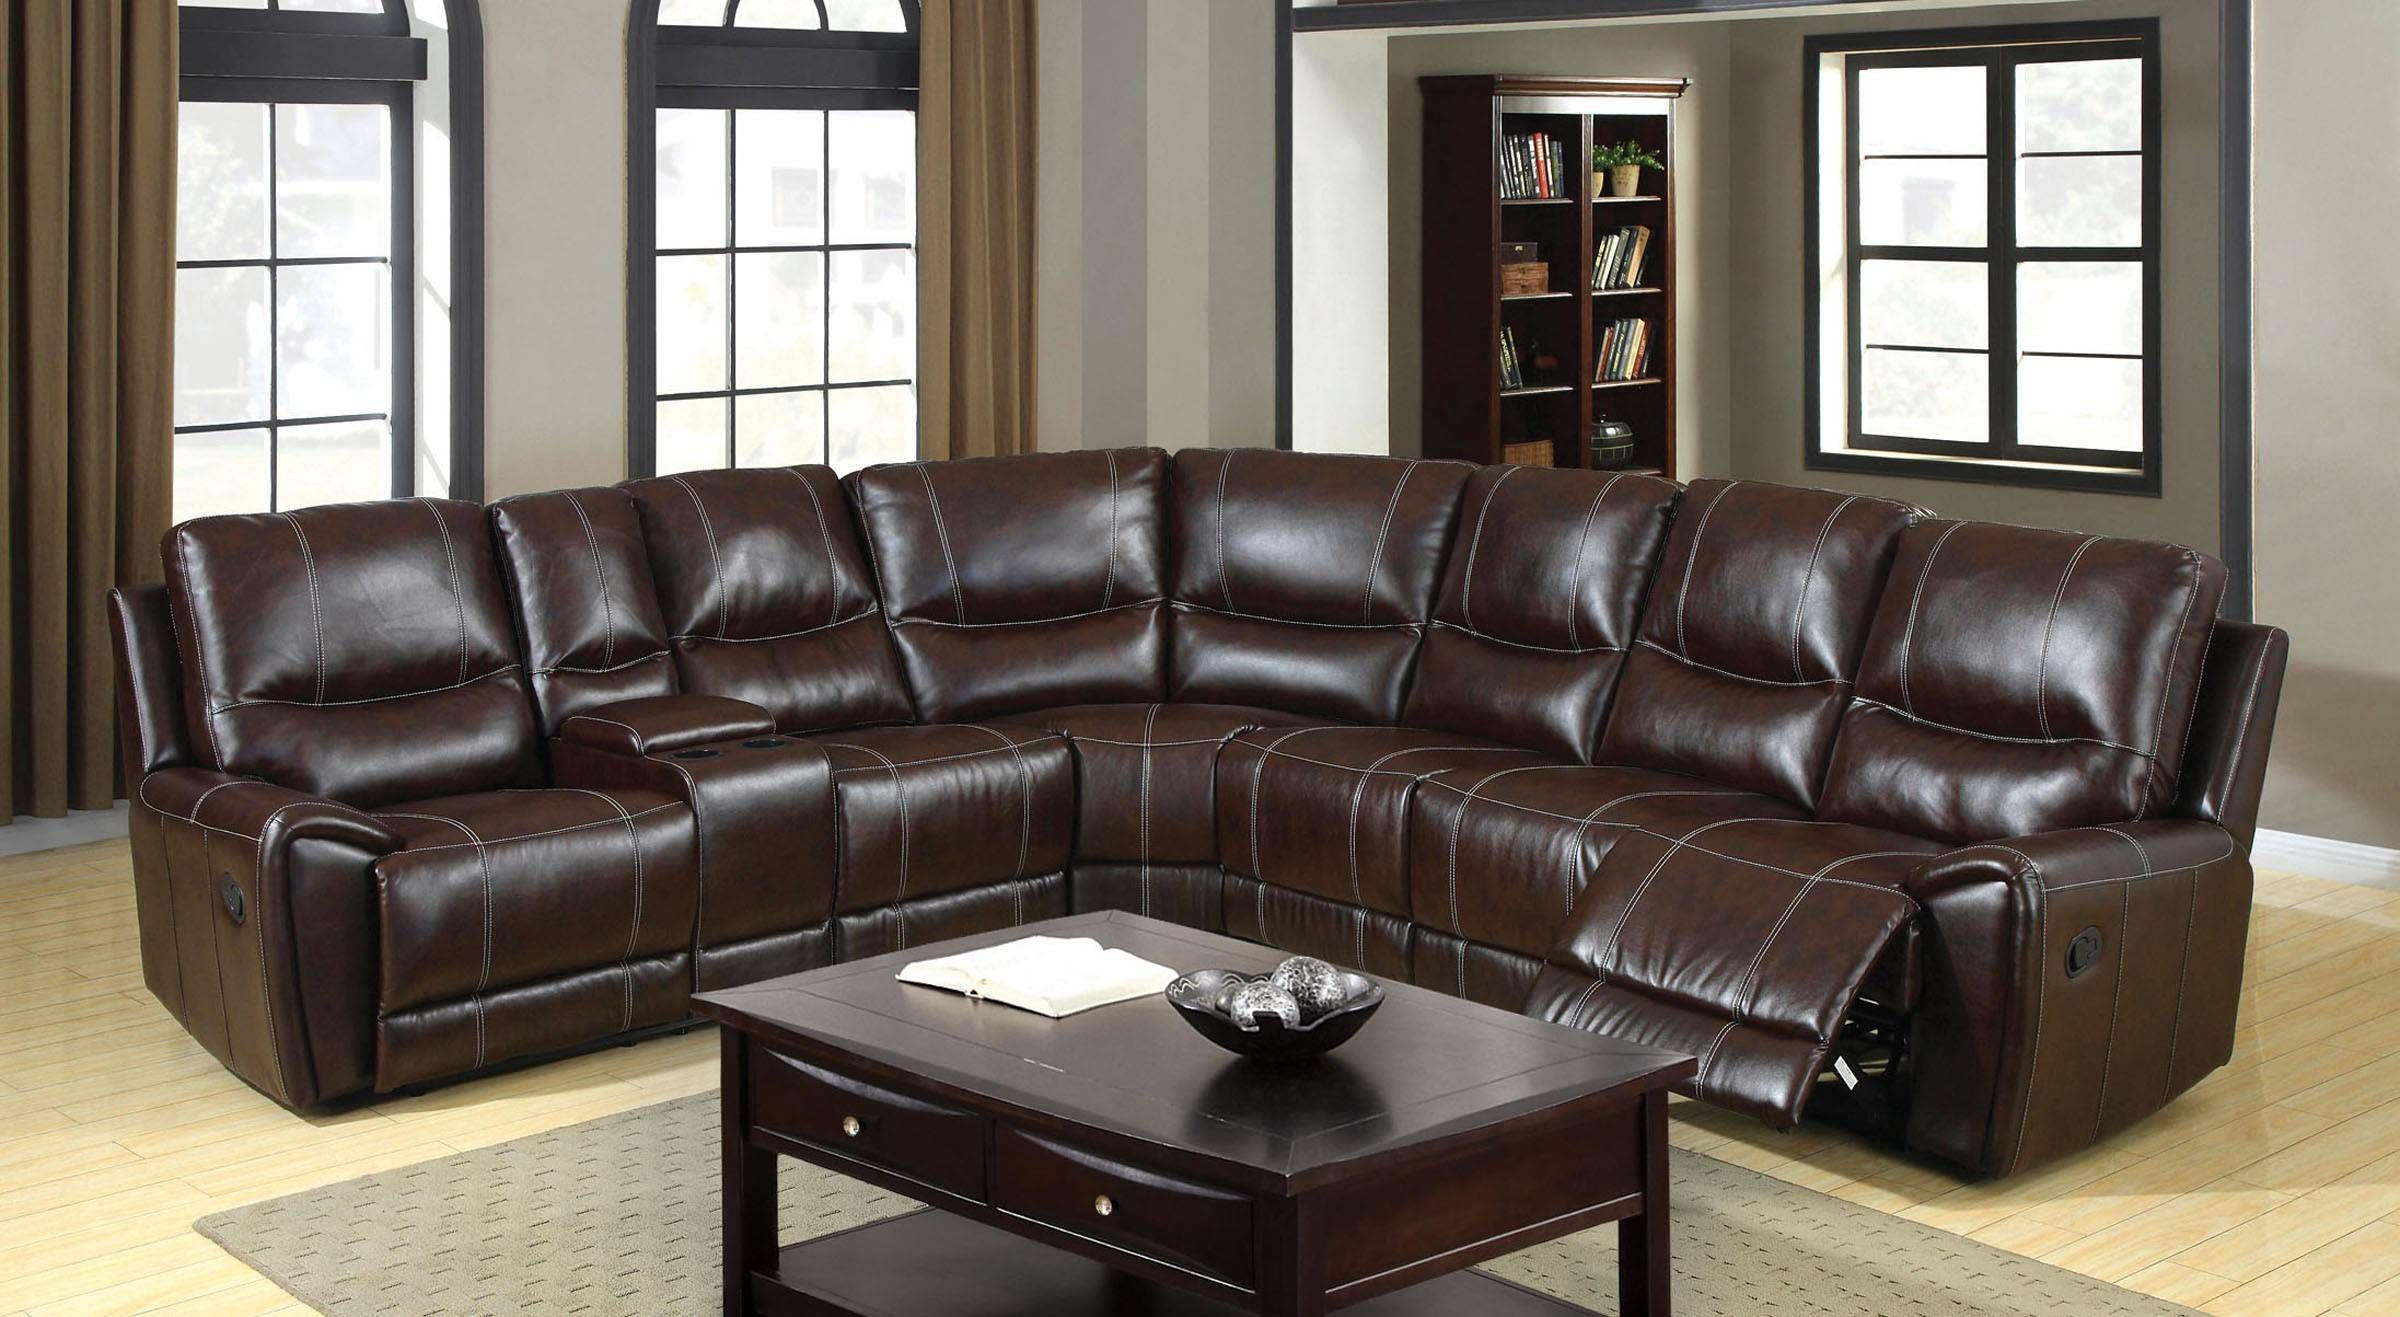 Keystone Cm6559 Brown Bonded Leather Match 3 Recliners Sectional